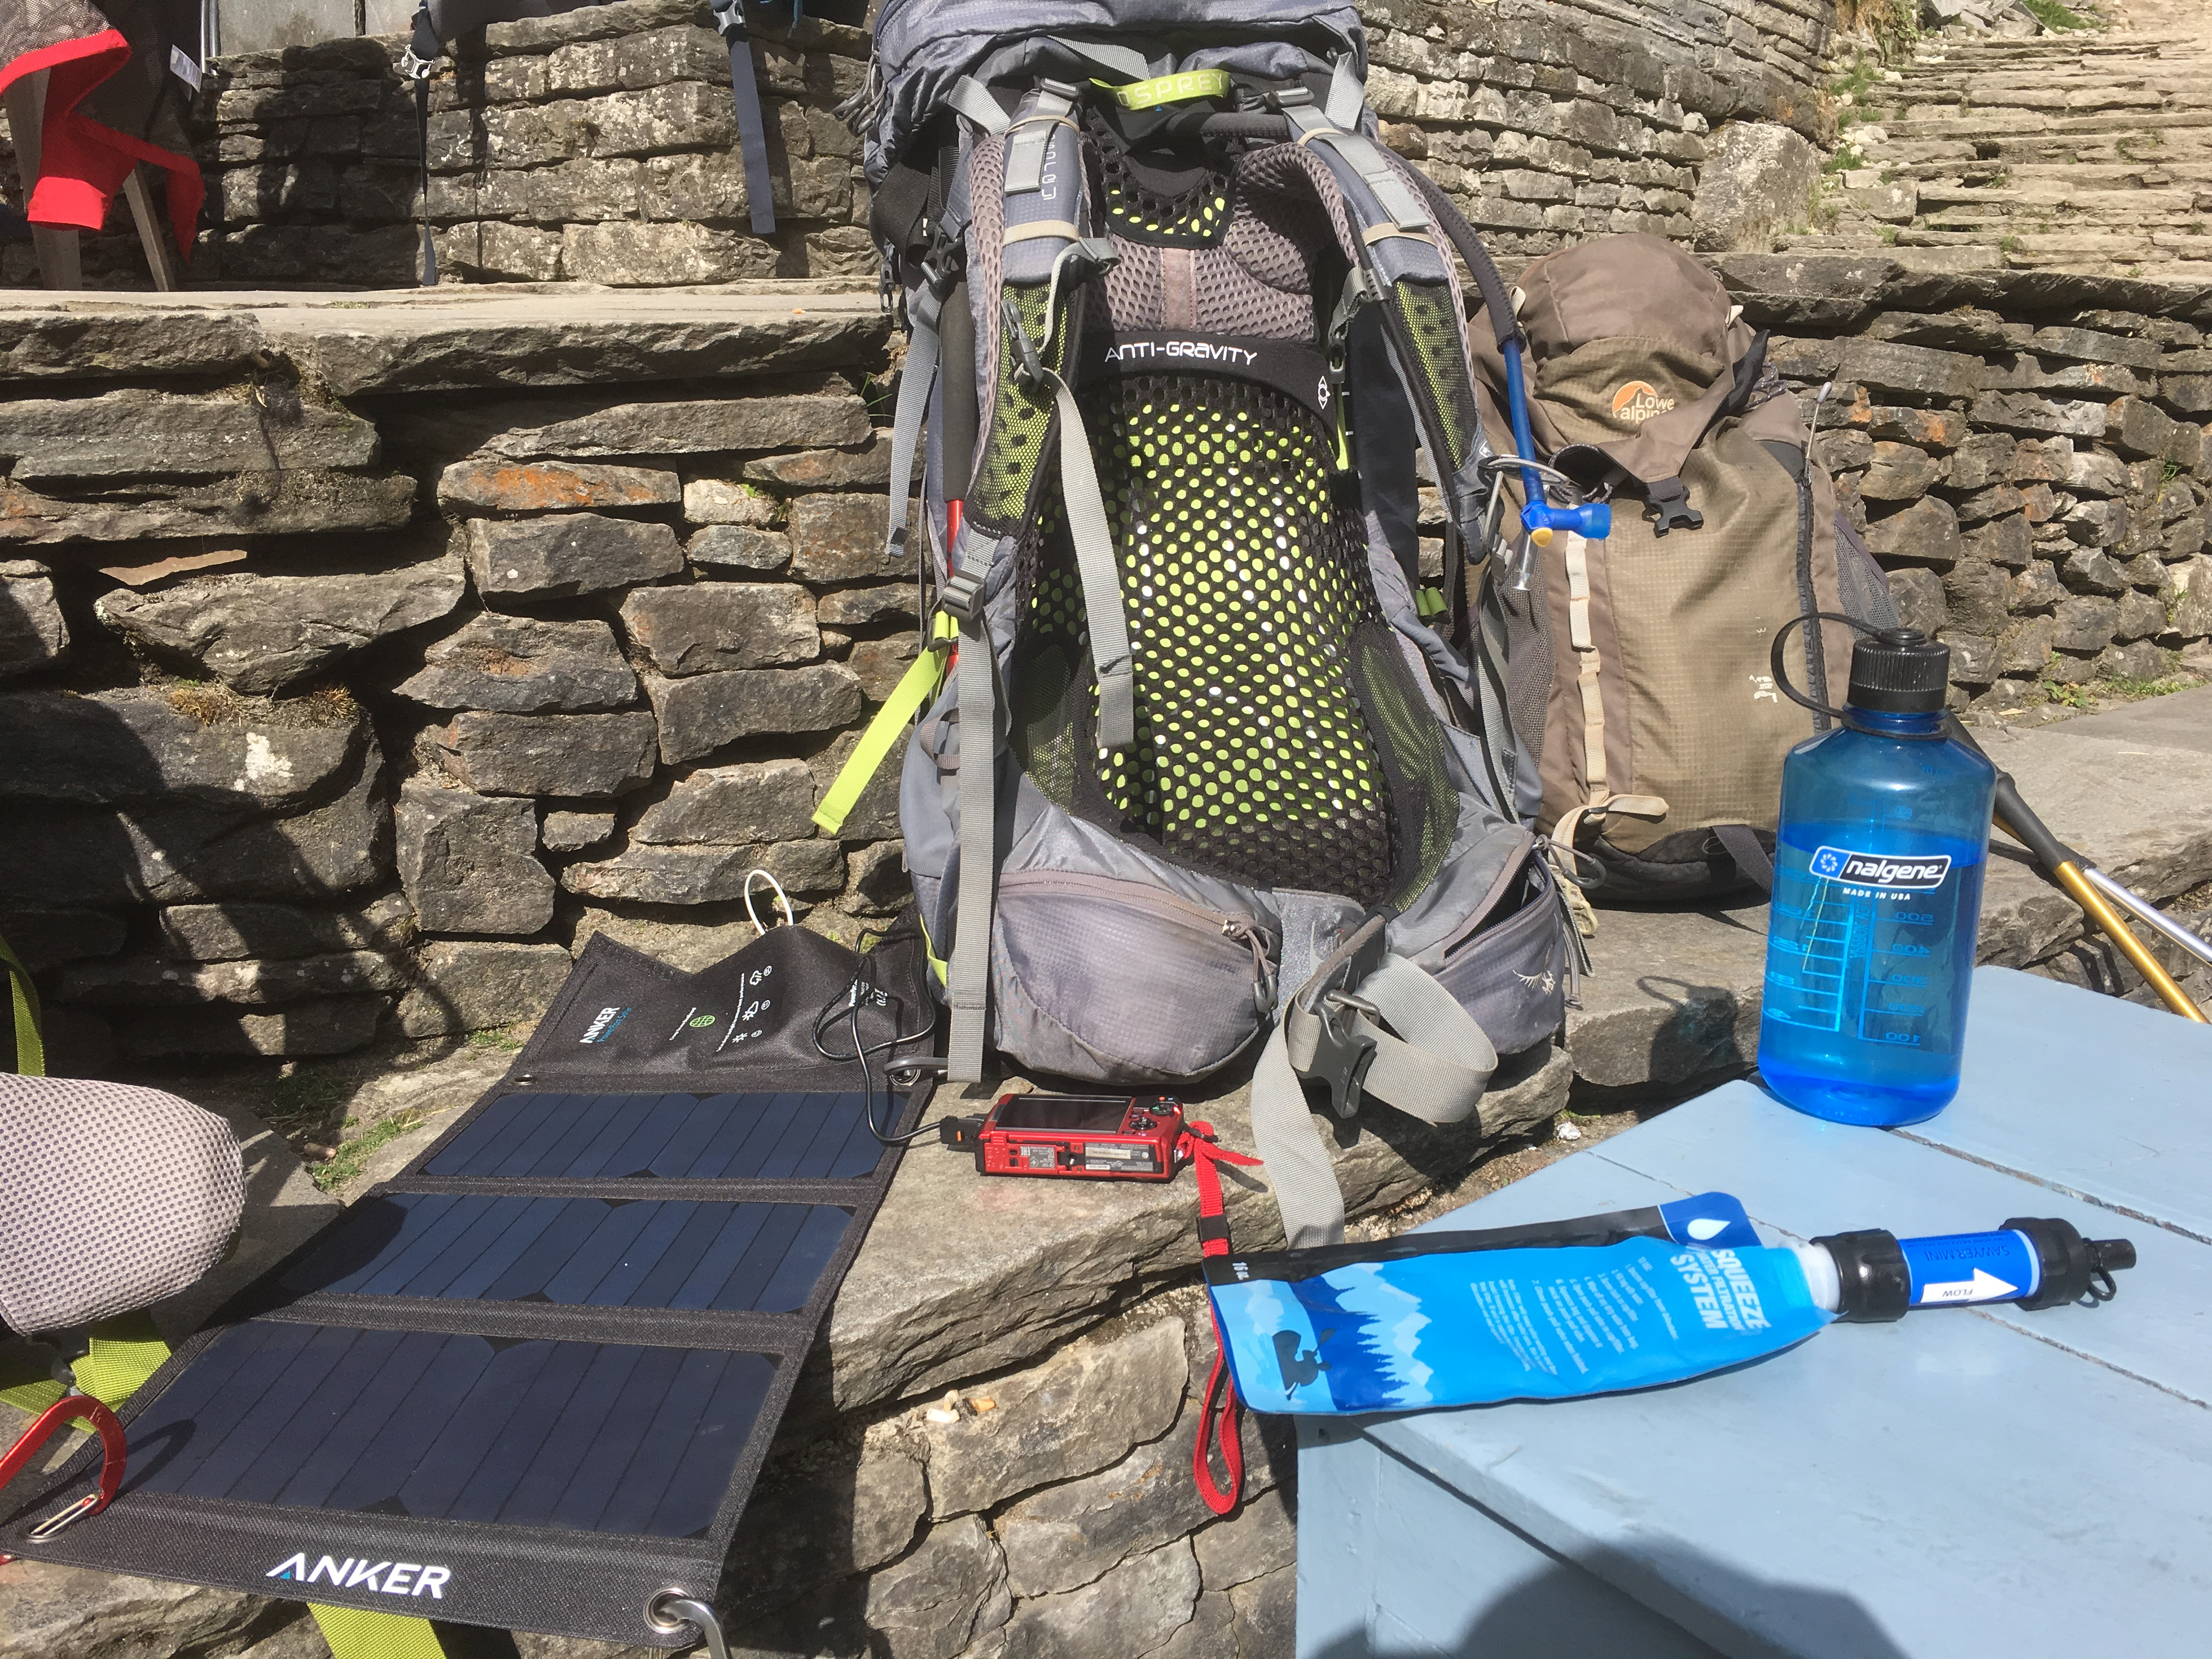 solar charger, water purifier, backpack